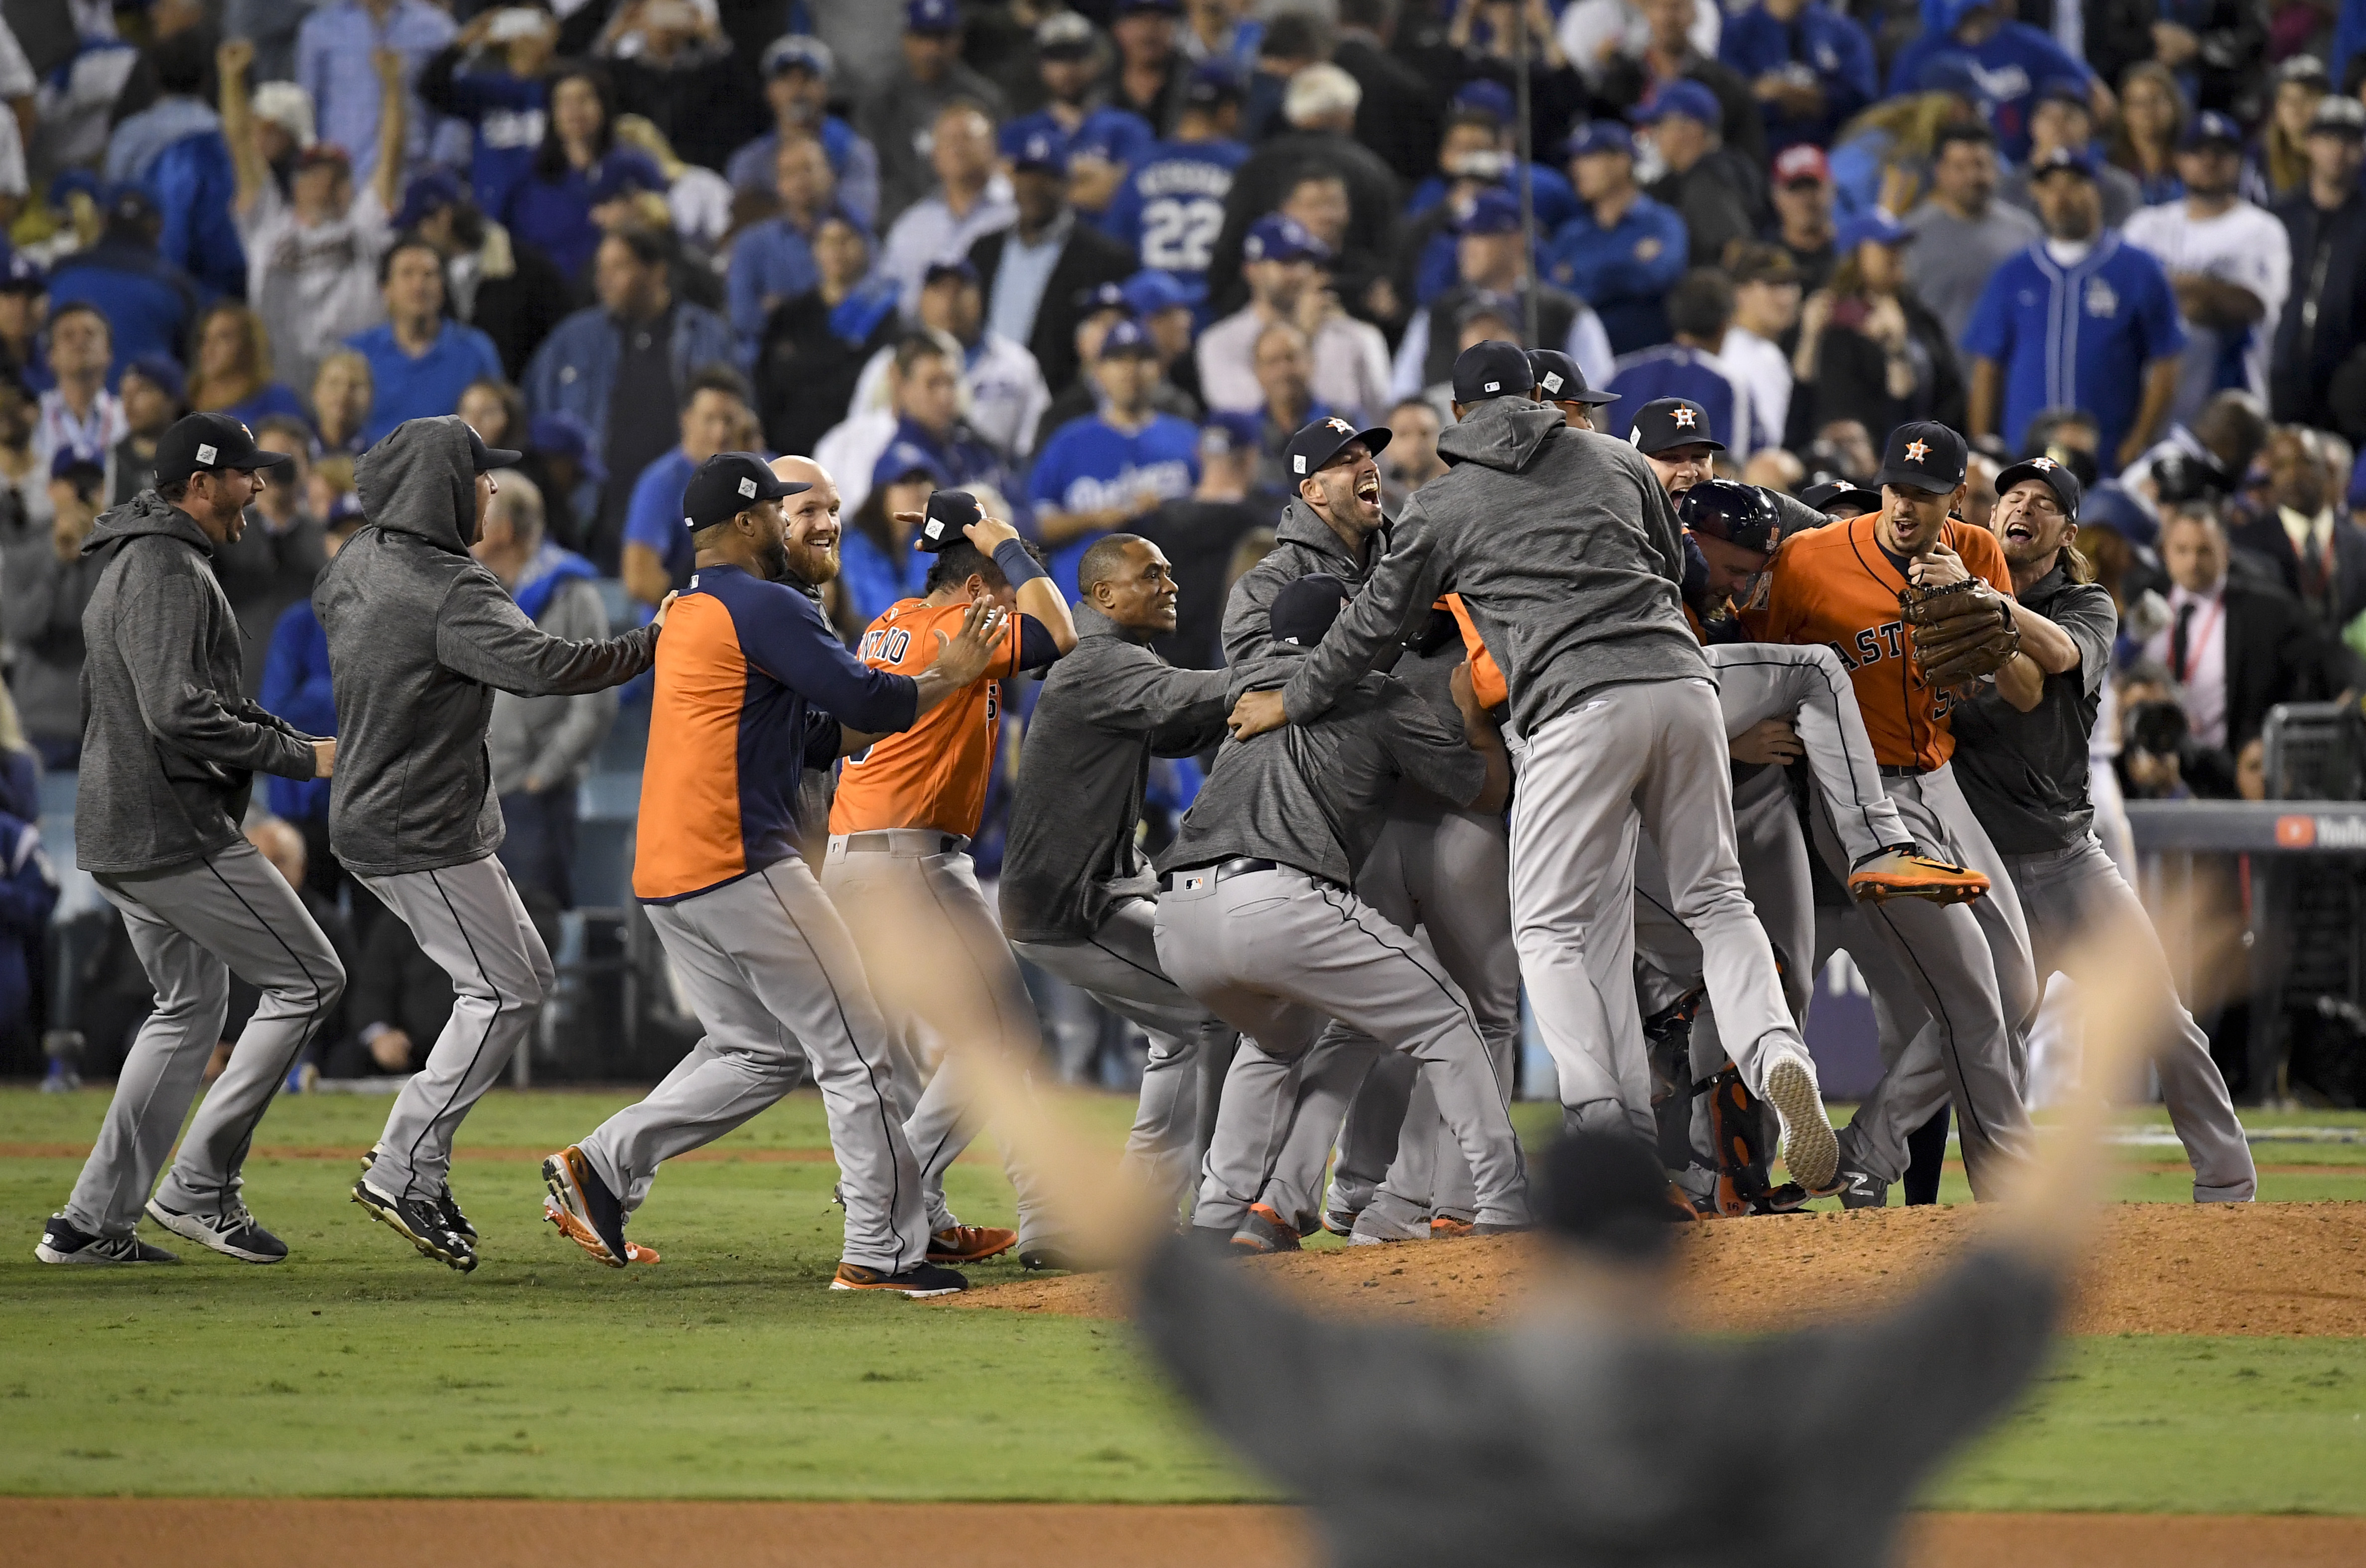 Houston Astros celebrate after their win against the Los Angeles Dodgers in Game 7 of the World Series Wednesday, Nov. 1, 2017, in Los Angeles. The Astros won 5-1 to win the series 4-3. (AP Photo/Mark J. Terrill)